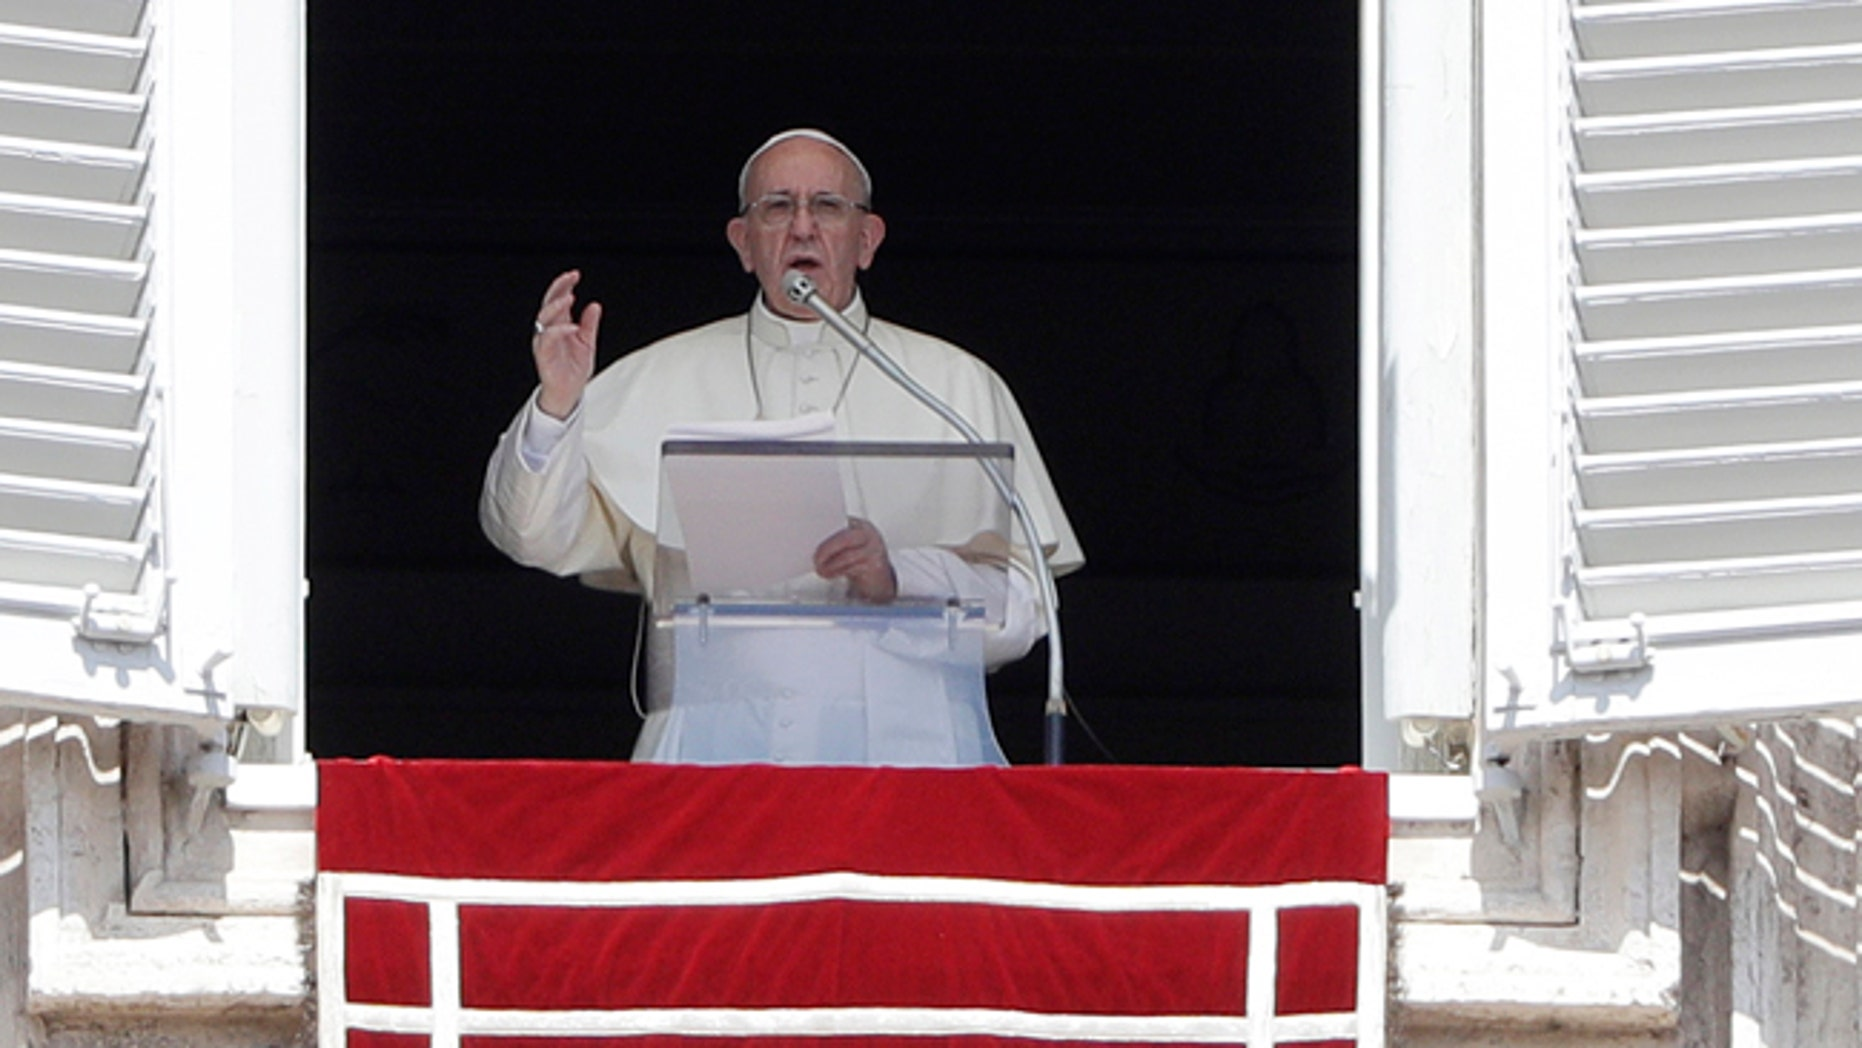 Pope Francis delivers his blessing as he recites the Angelus noon prayer in St. Peter's Square at the Vatican, Sunday, Sept. 3, 2017. (AP Photo/Gregorio Borgia)